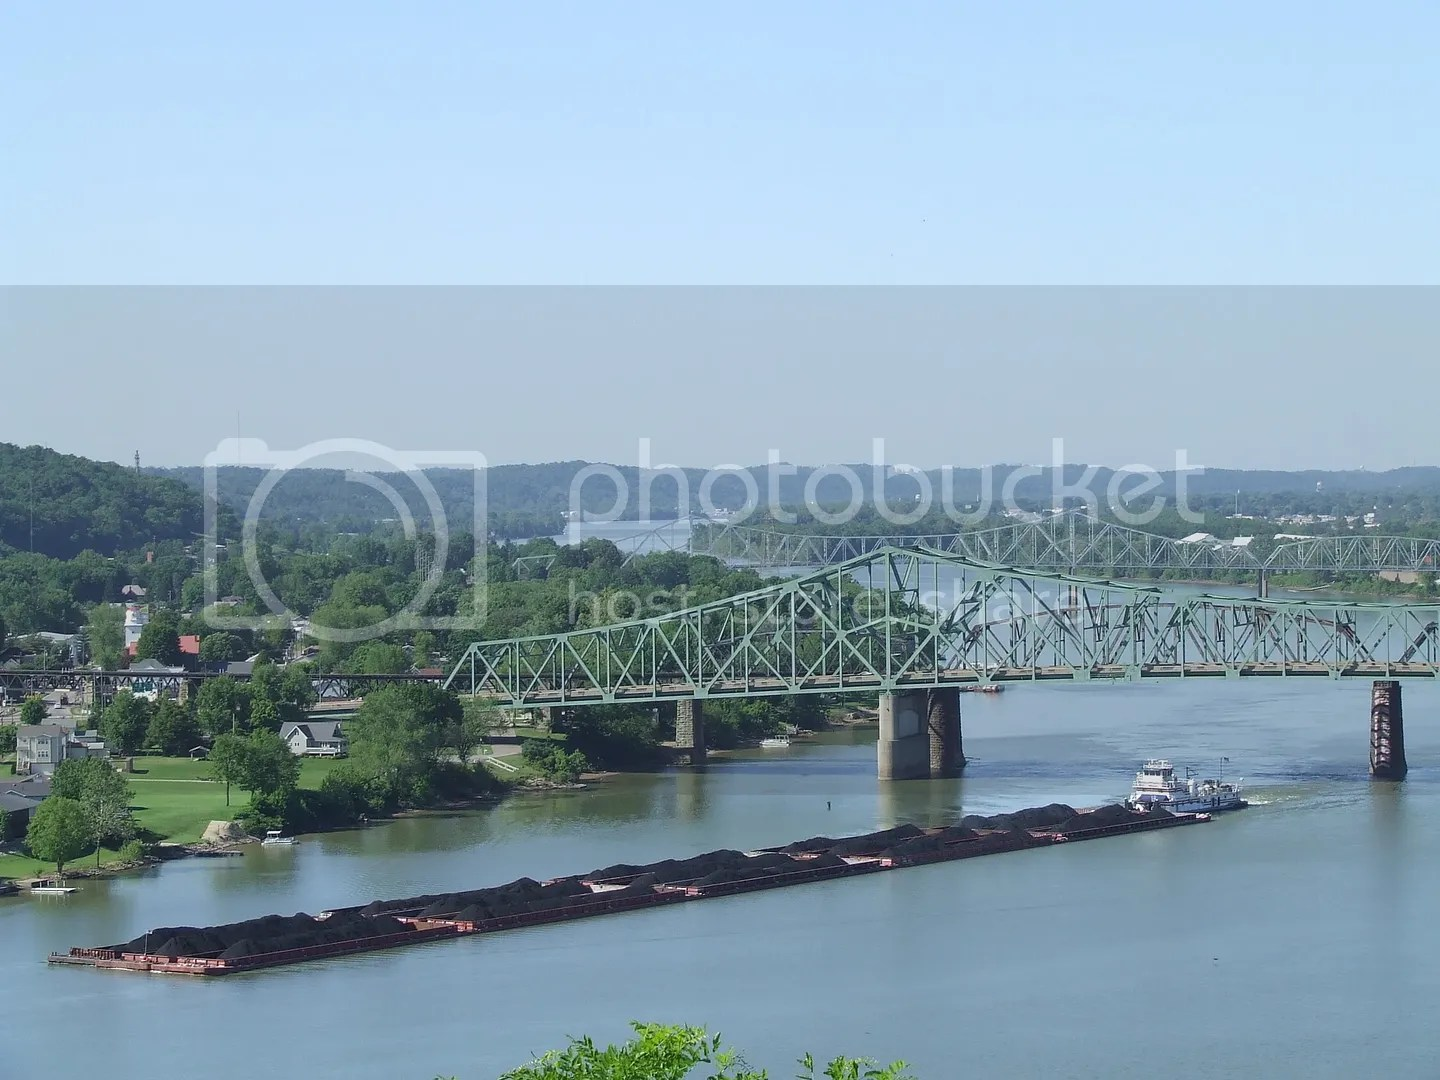 A barge hauling coal makes its way down the Ohio river at Parkersburg, WV